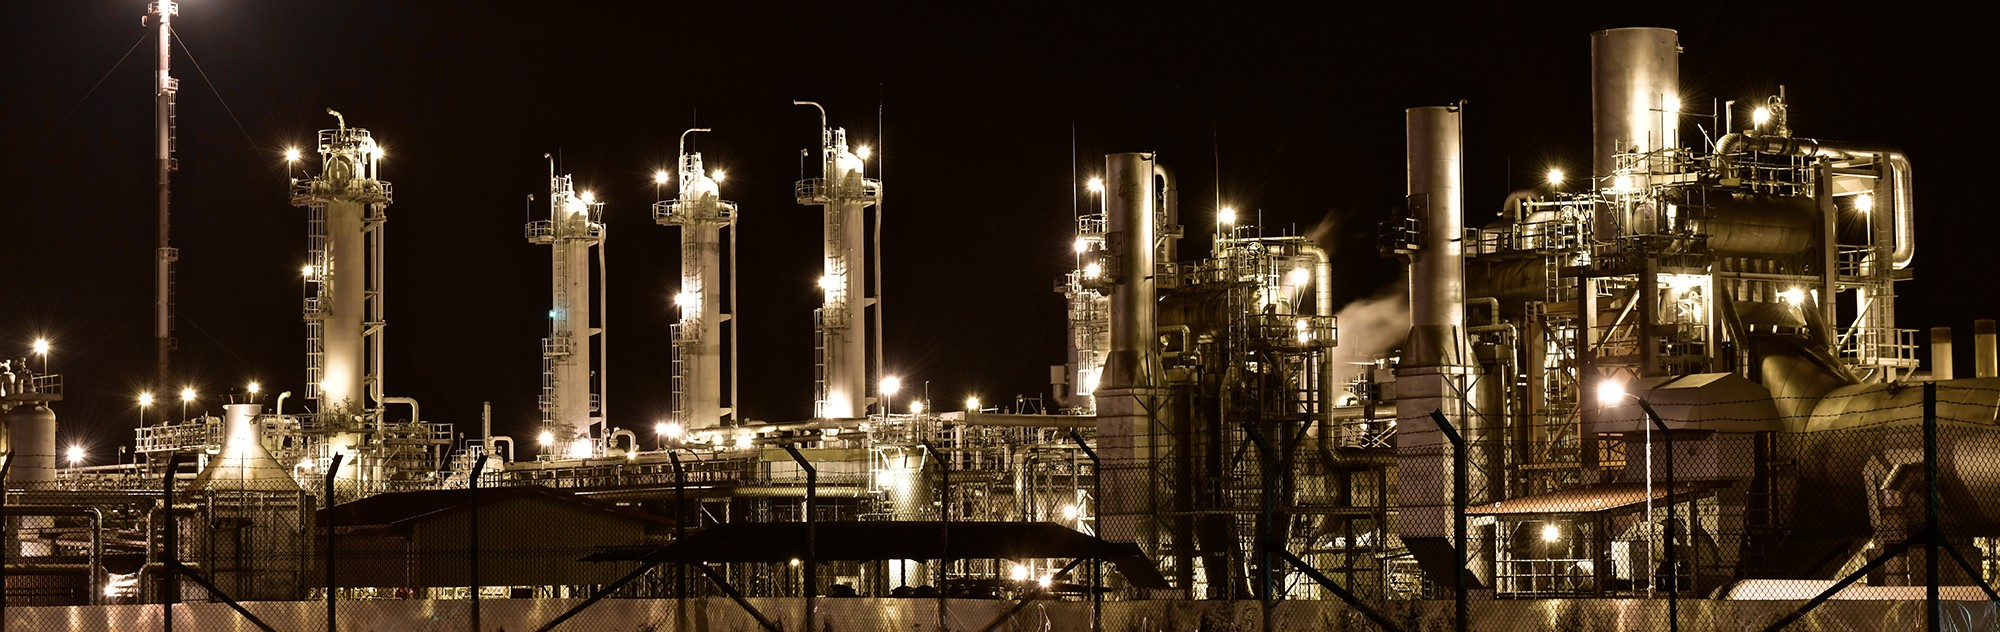 panoramic refinery lit up at night